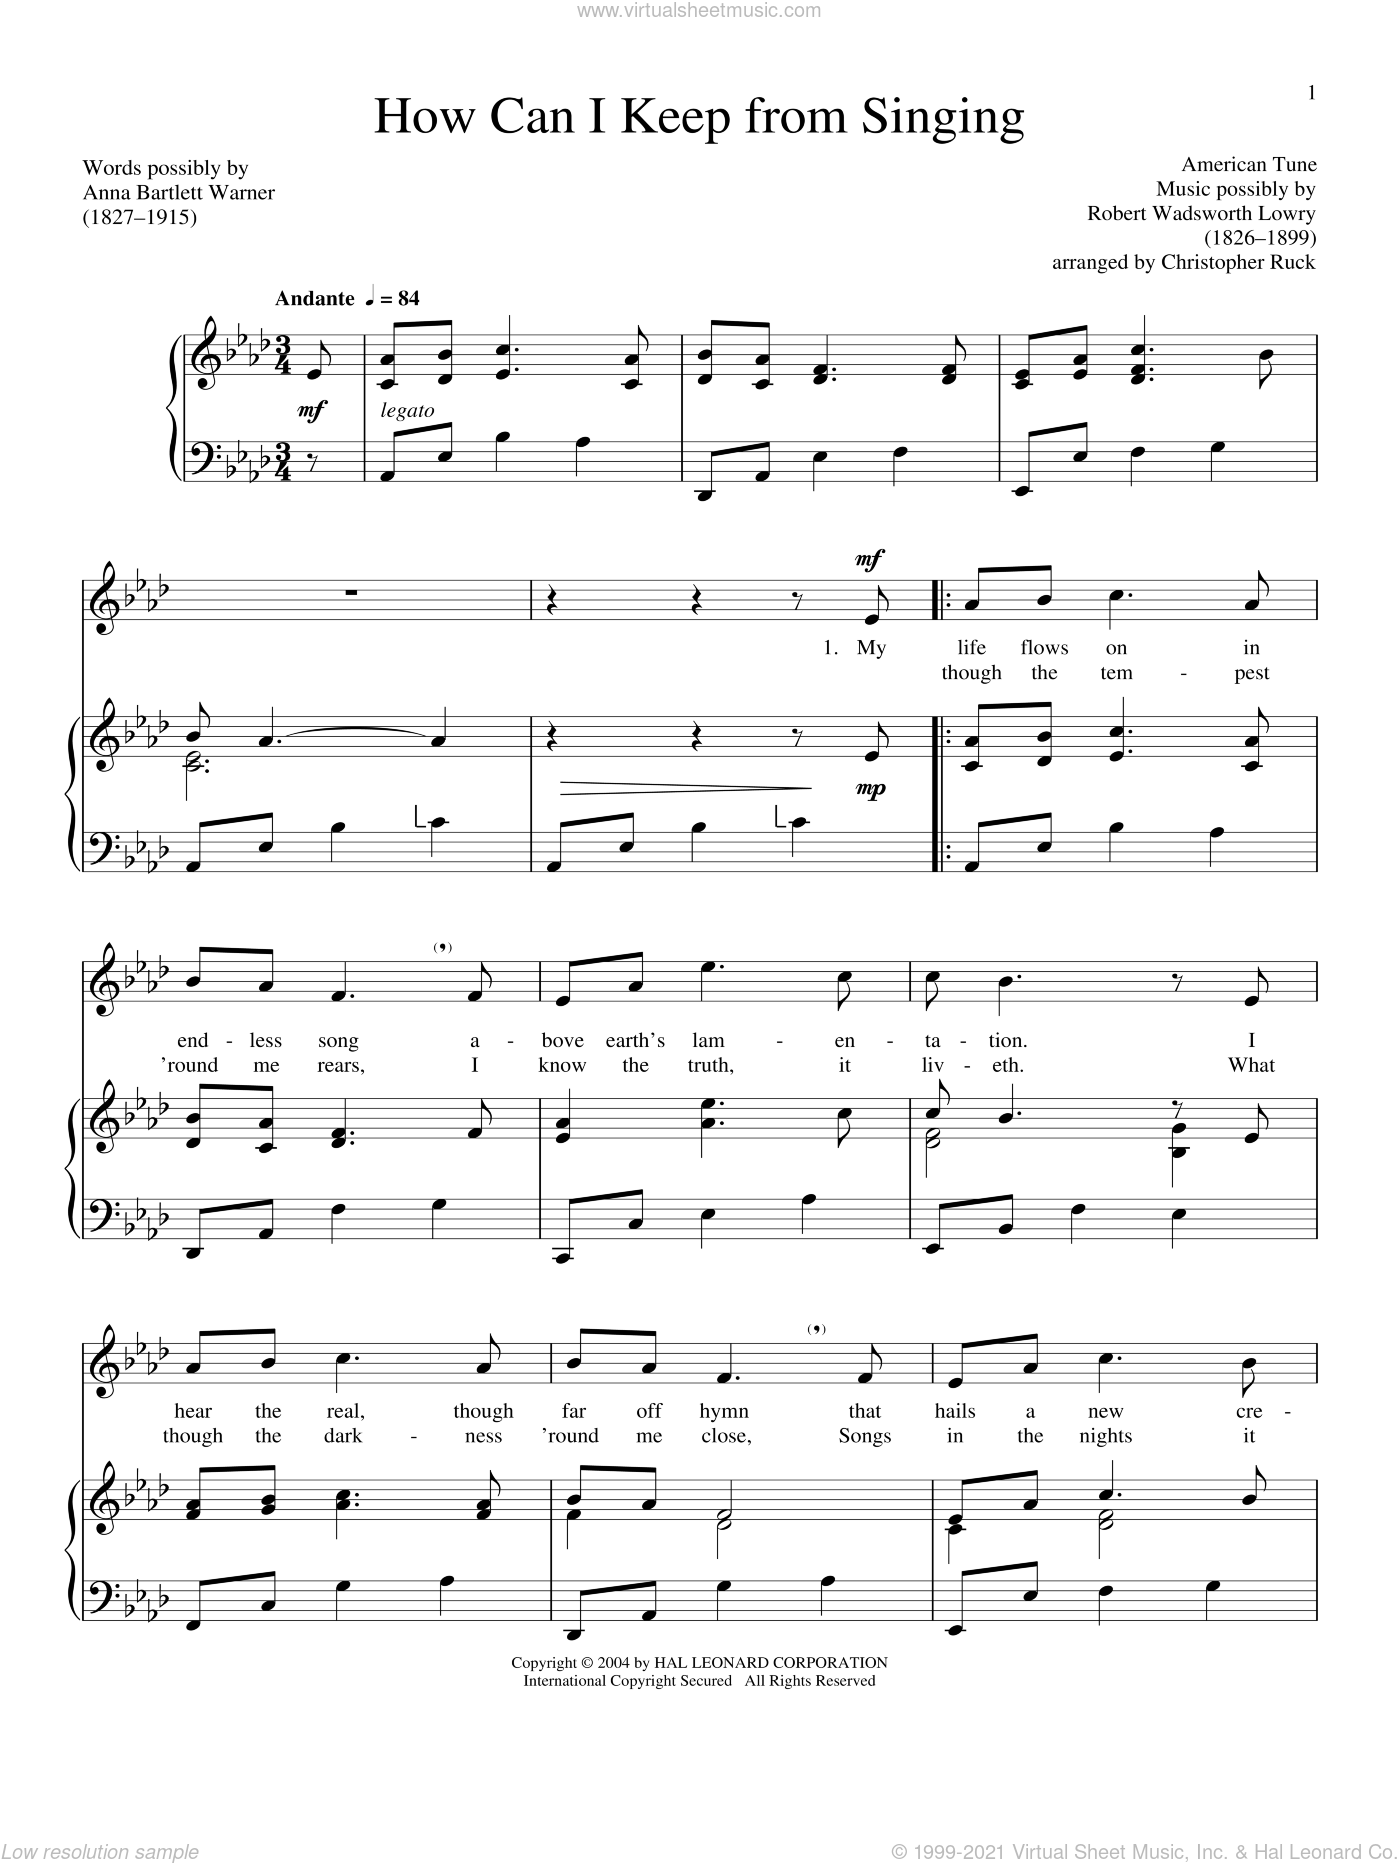 How Can I Keep From Singing sheet music for voice and piano